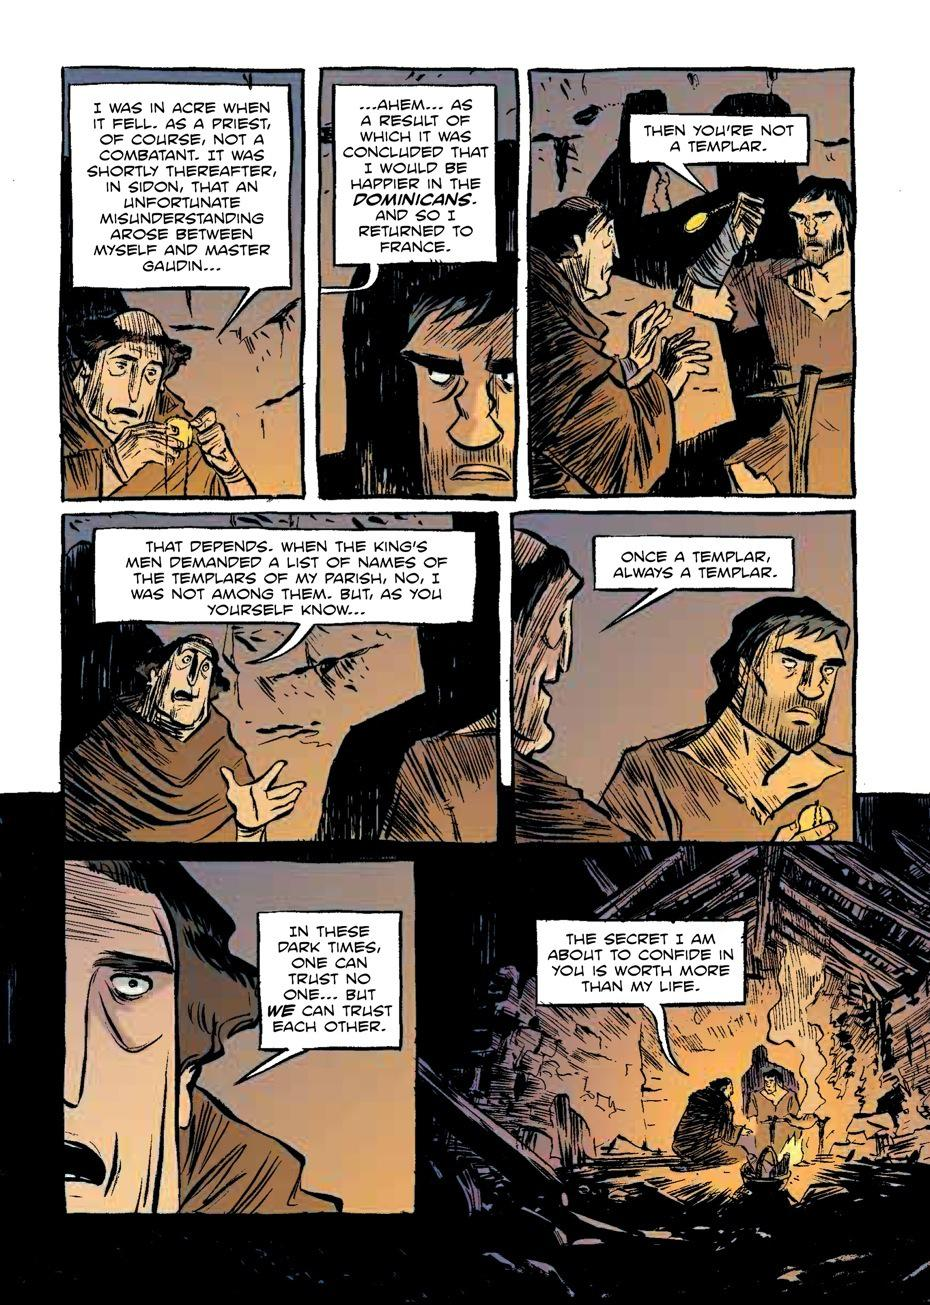 Templar New 480 Page Graphic Novel About The Knights